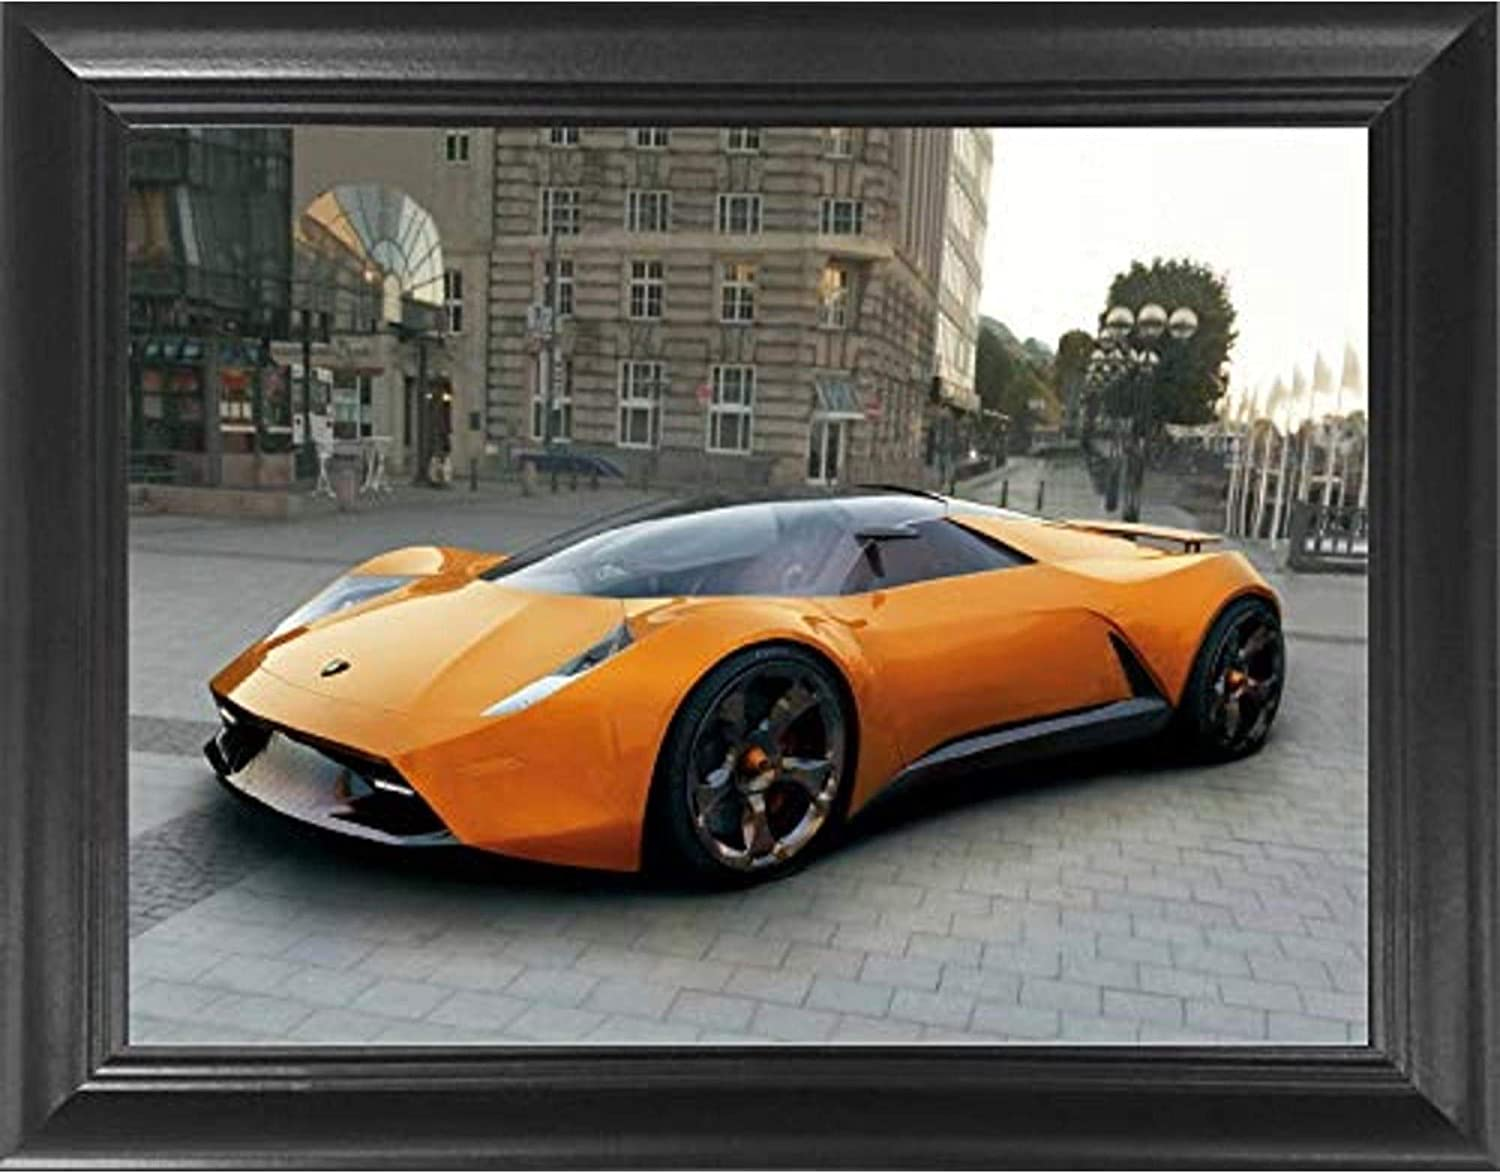 Amazon Com Lamborghini Exotic Sports Car 3d Poster Wall Art Decor Framed Print 18 5x14 5 Lenticular Posters Pictures Memorabilia Gifts For Guys Girls Bedroom Cool Car Picture For